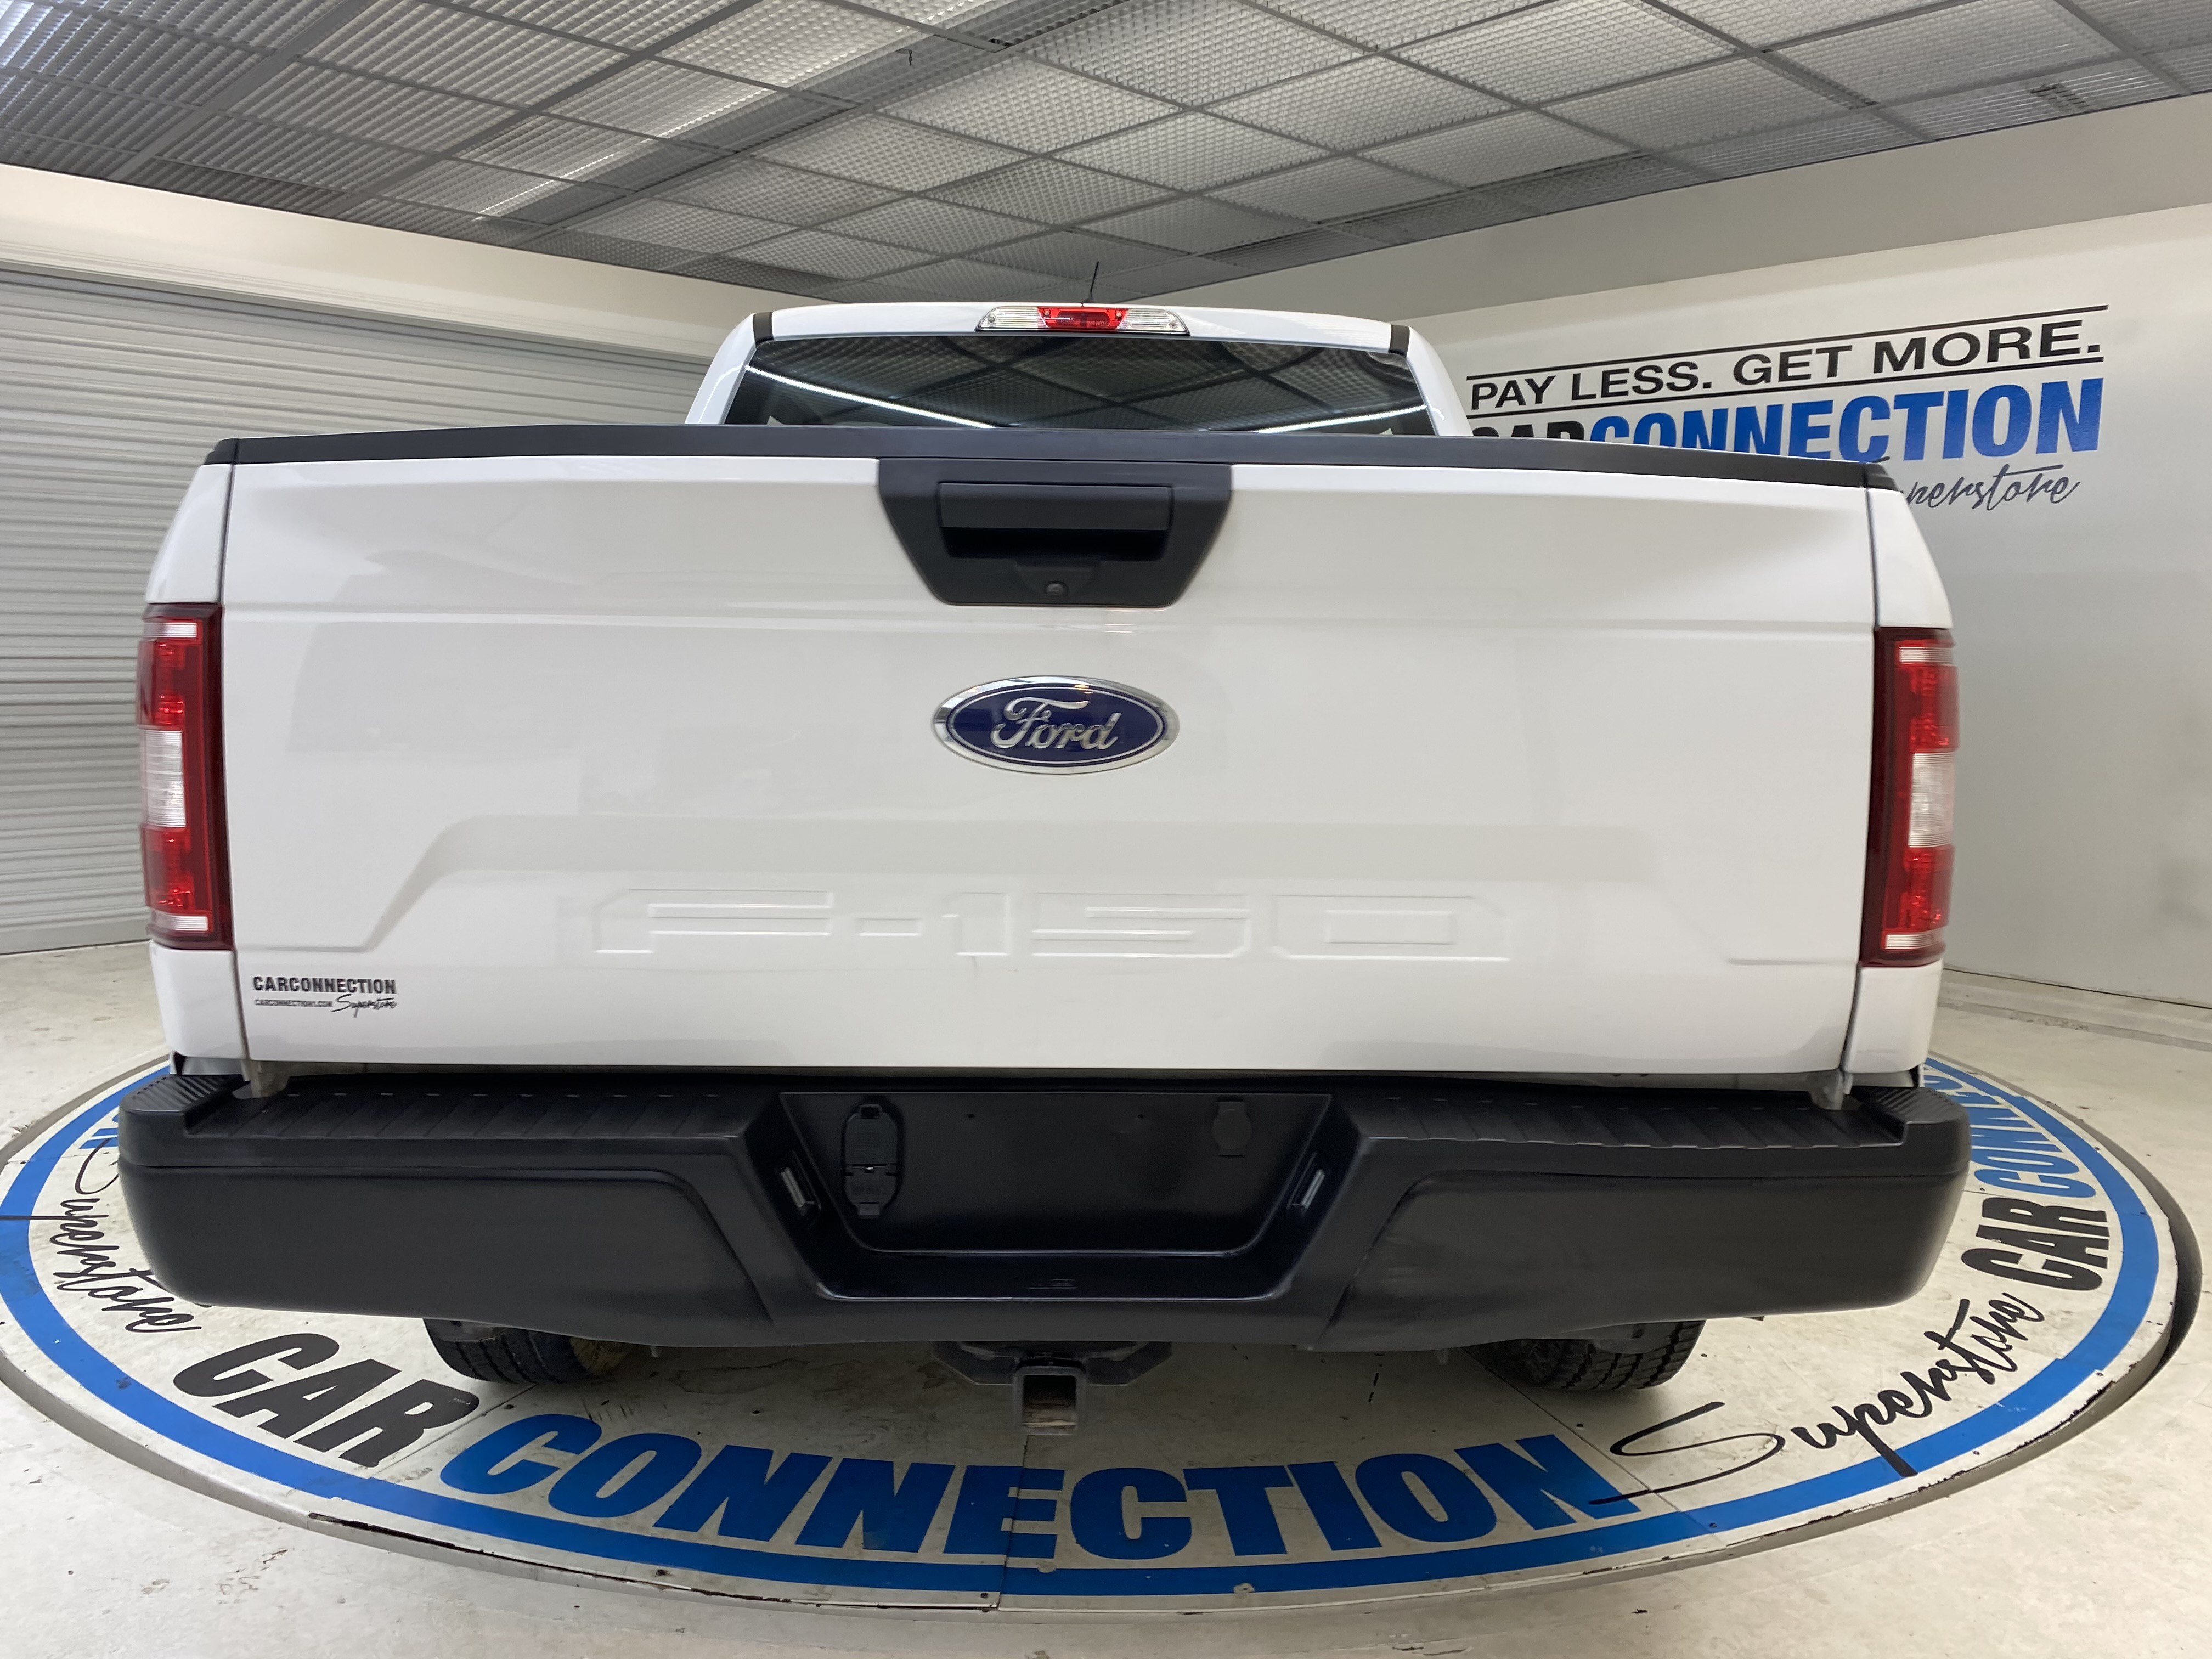 Car Connection Superstore - Used vehicle - Truck FORD F-150 Crew 2018